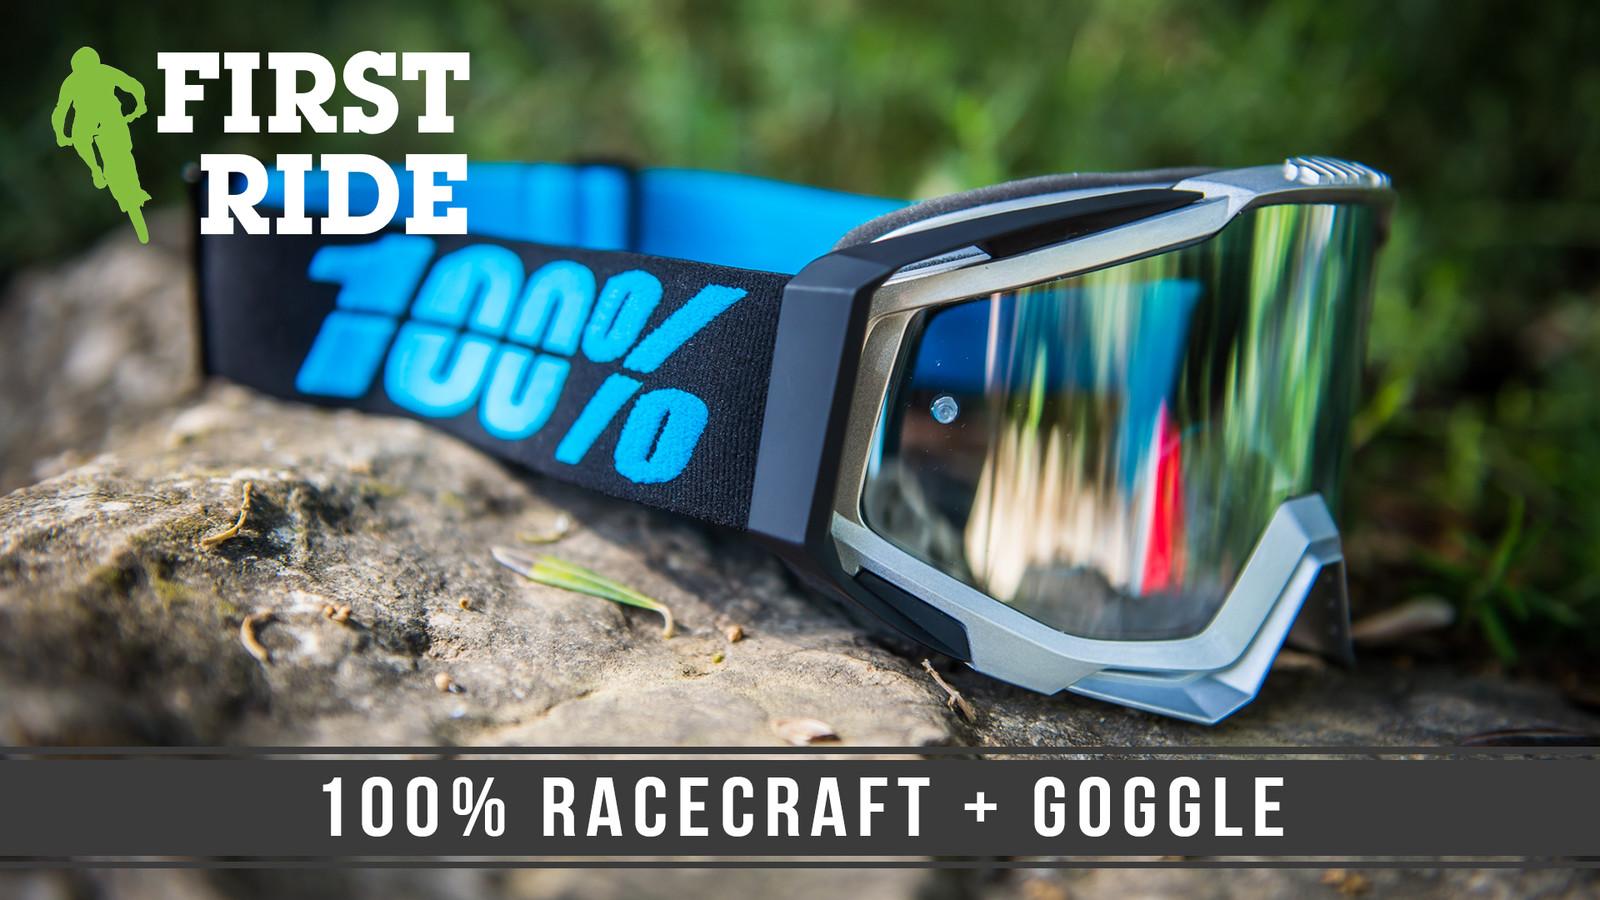 First Ride: 100% Racecraft + Goggle